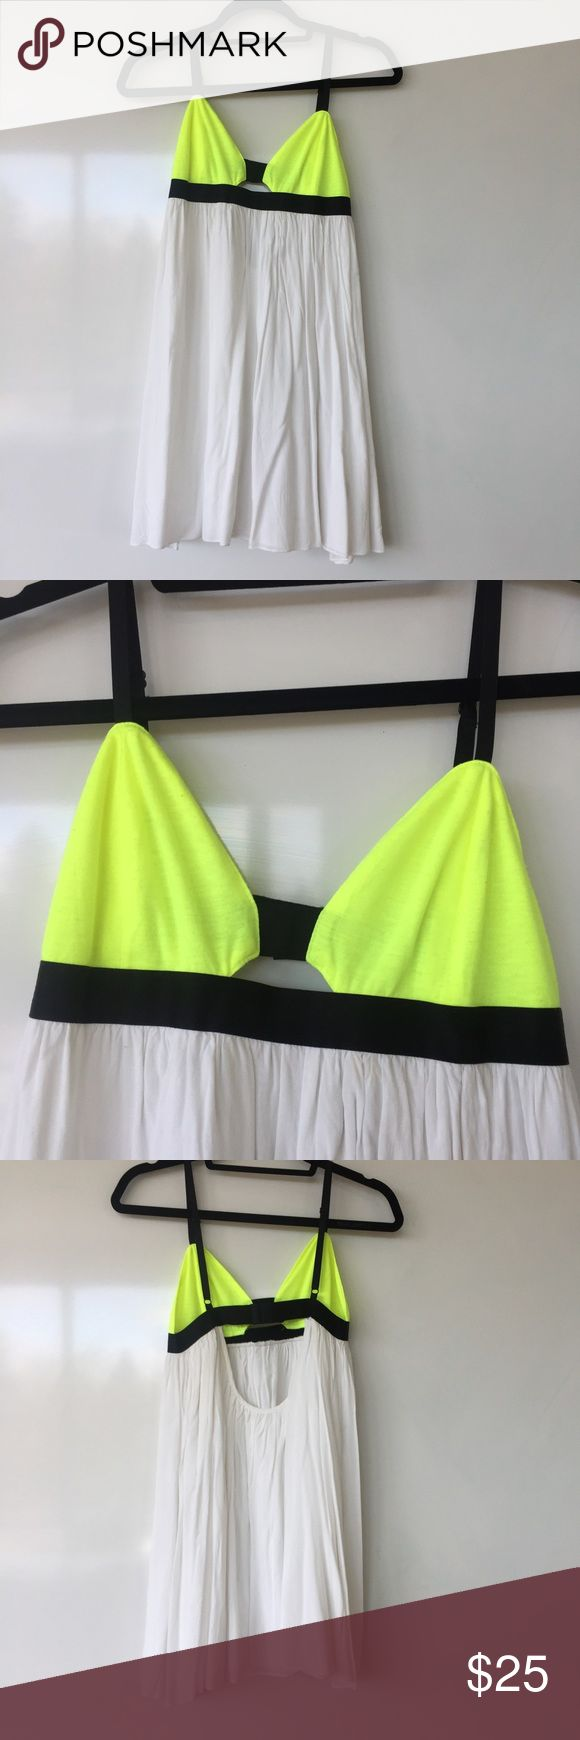 lf dress white and neon yellow dress from lf. fits nicely. worn once. LF Dresses Mini